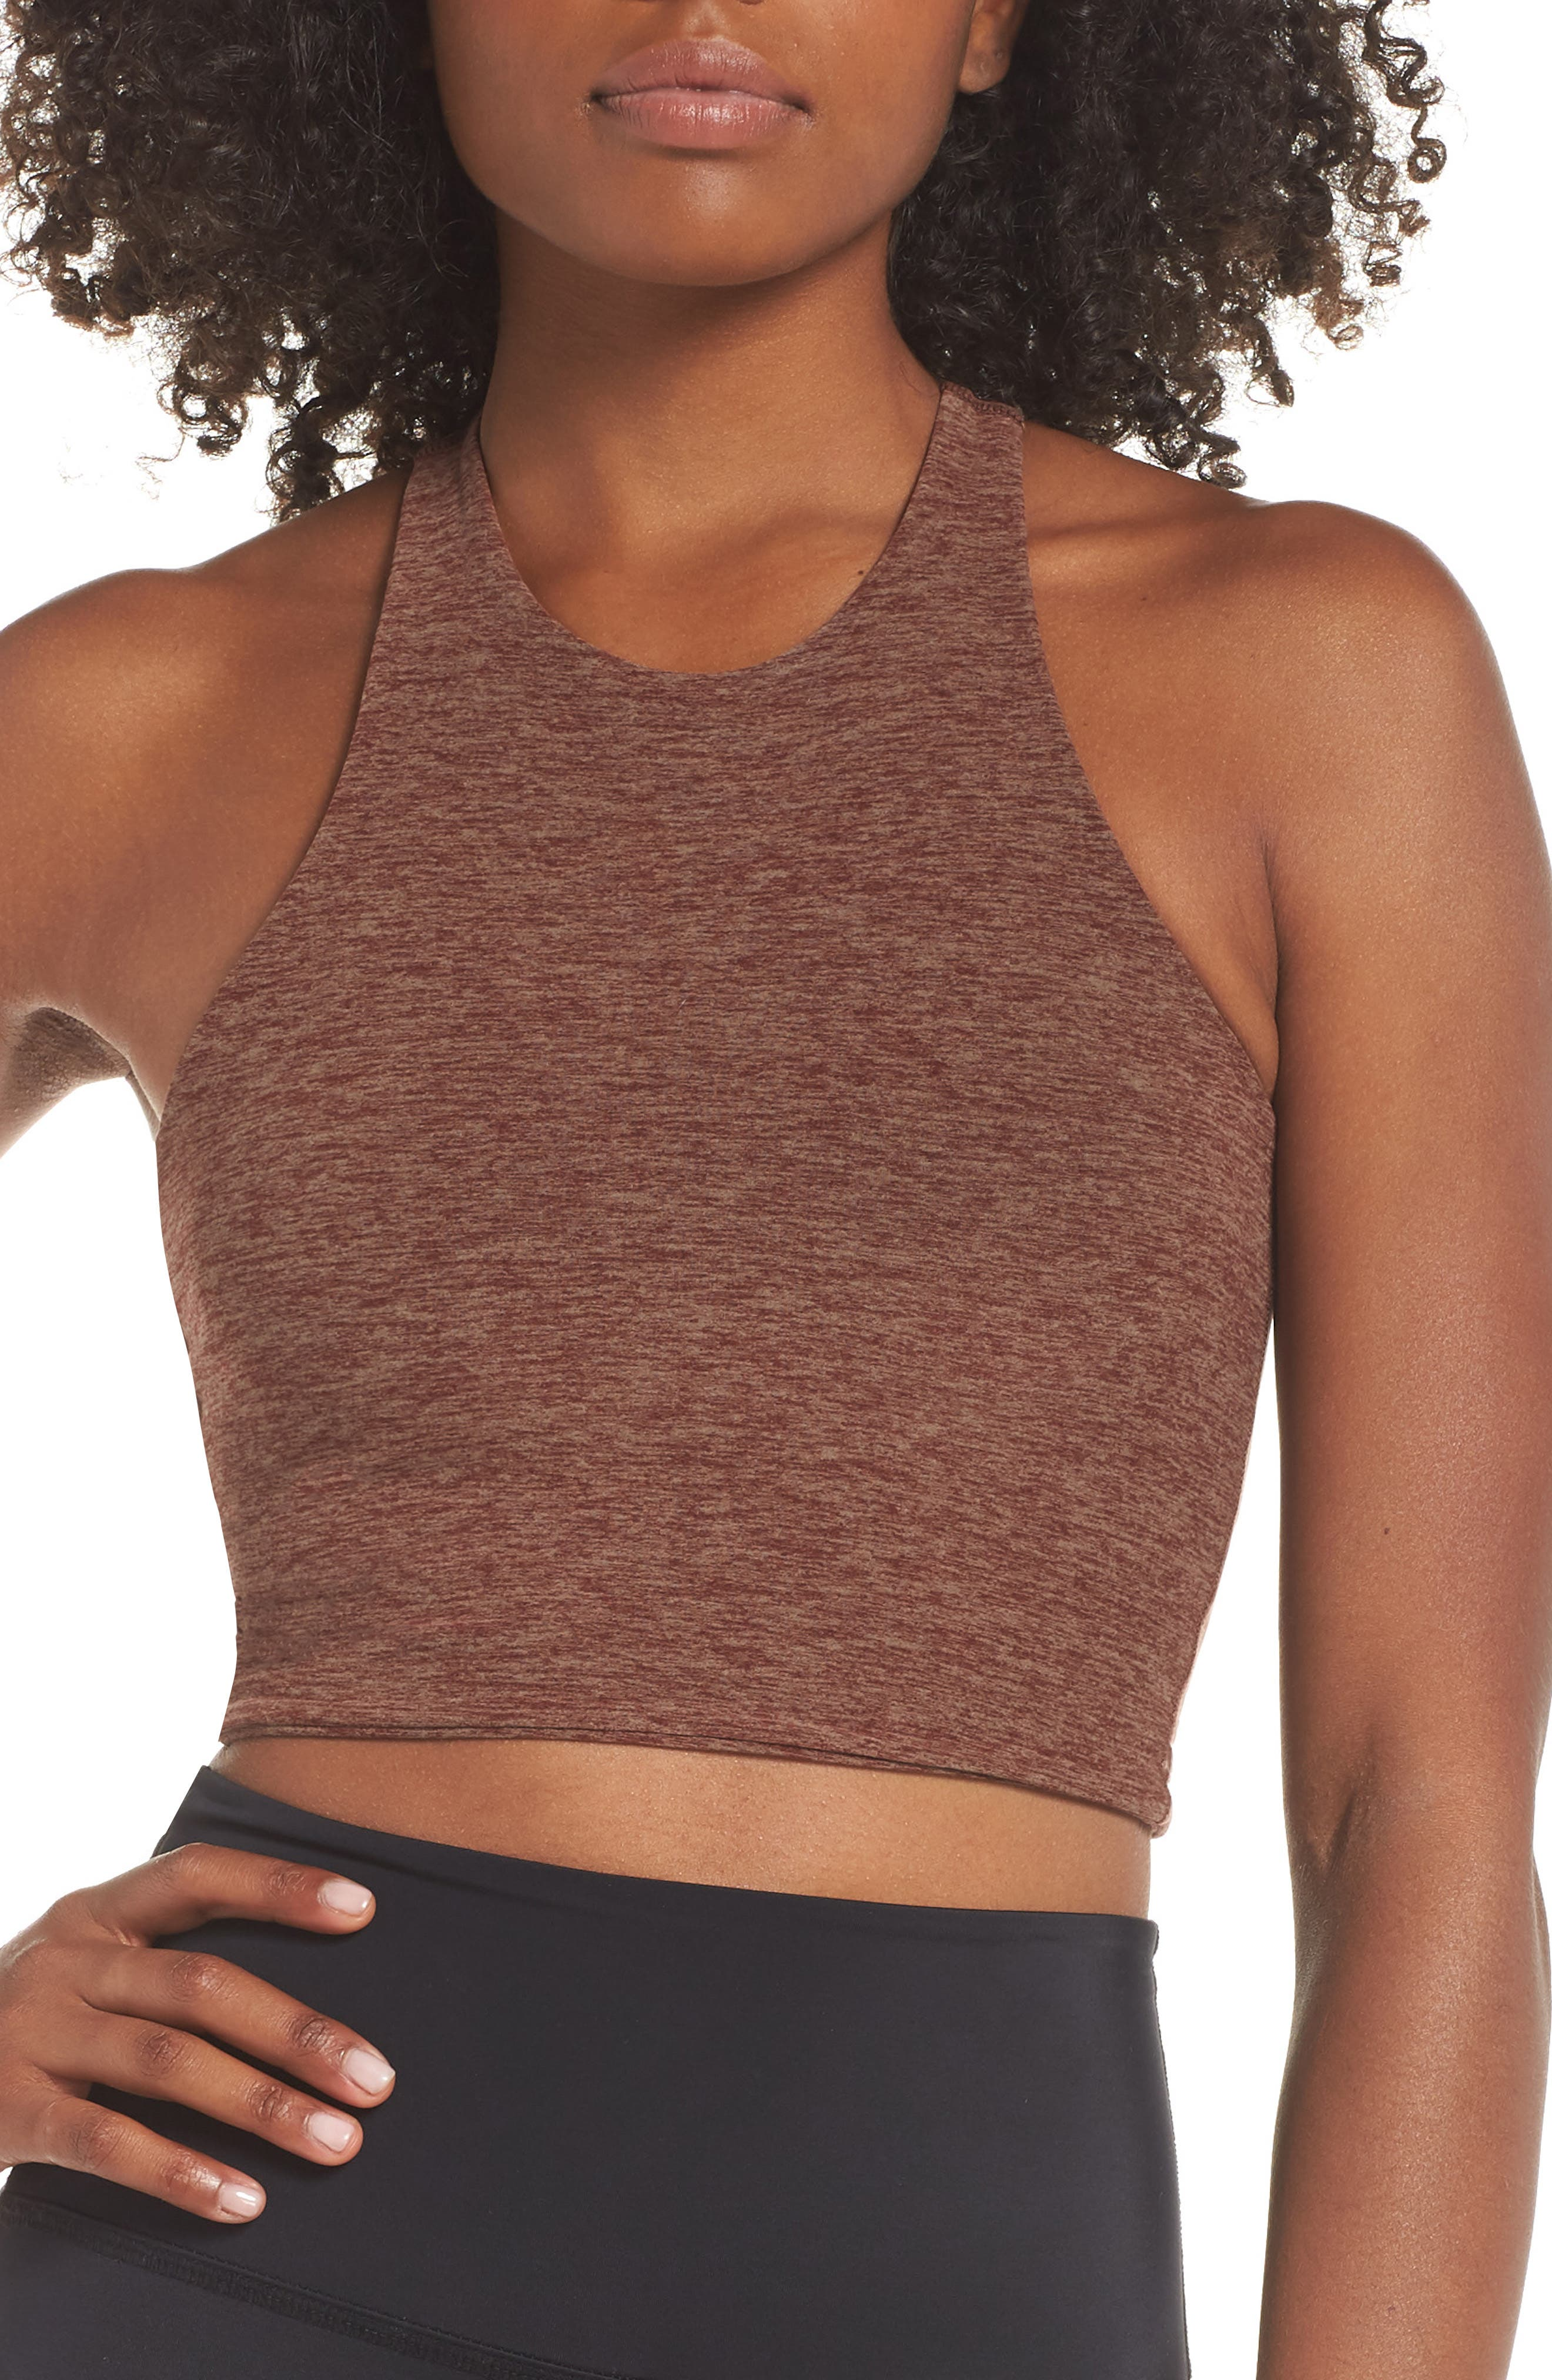 Across the Strap Cropped Top,                         Main,                         color, RED ROCK/ TUMBLEWEED